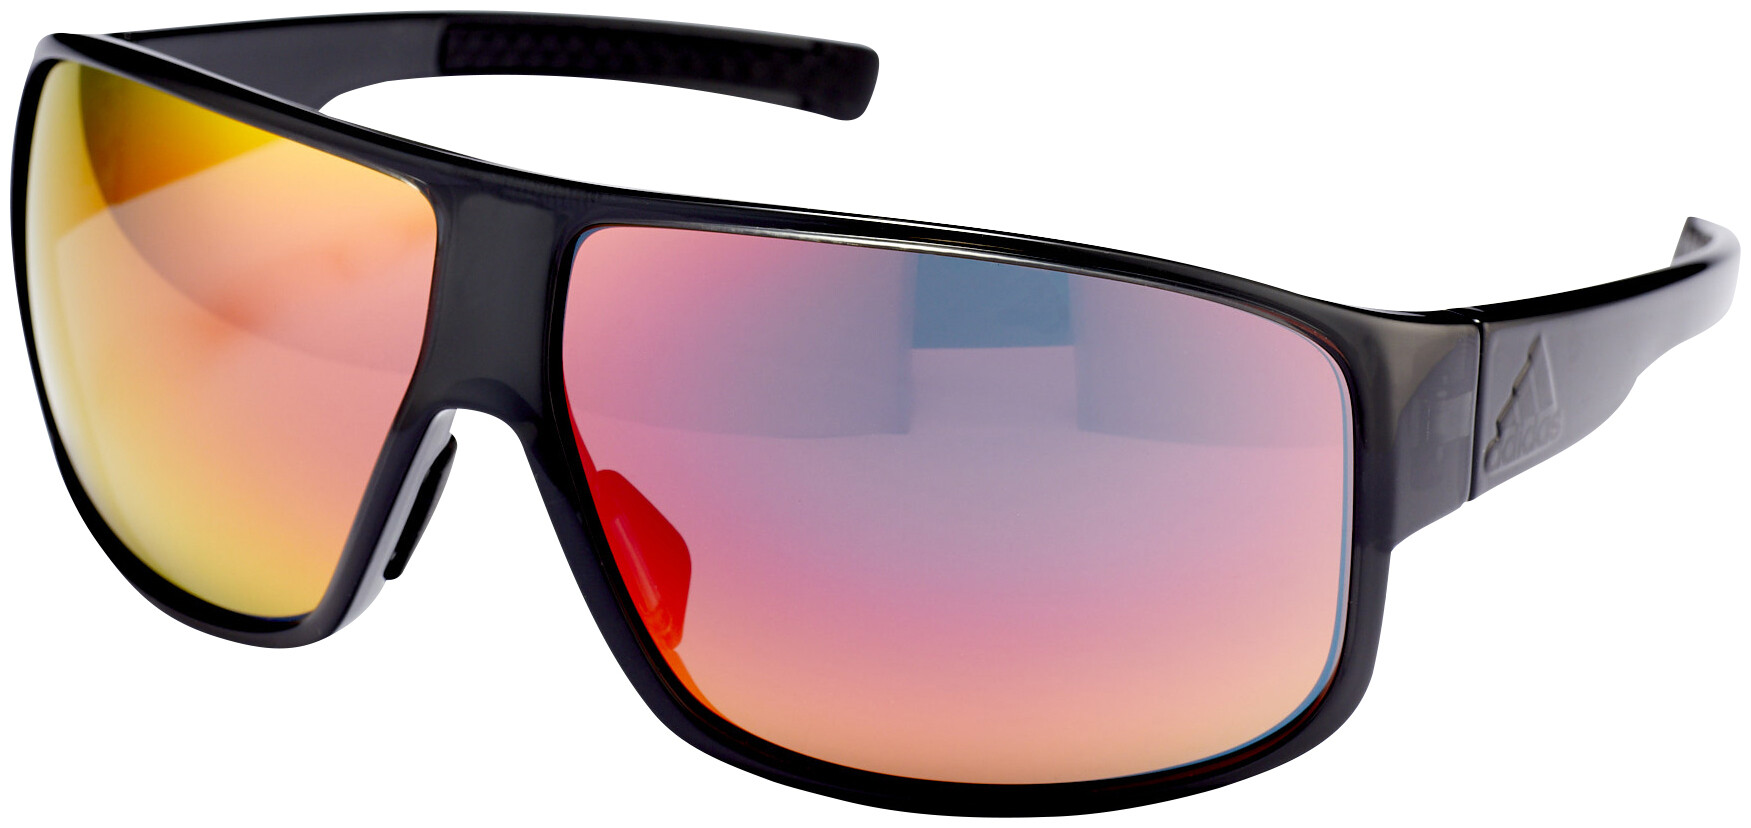 Adidas Horizor Sunglasses Review Singletracks Mountain